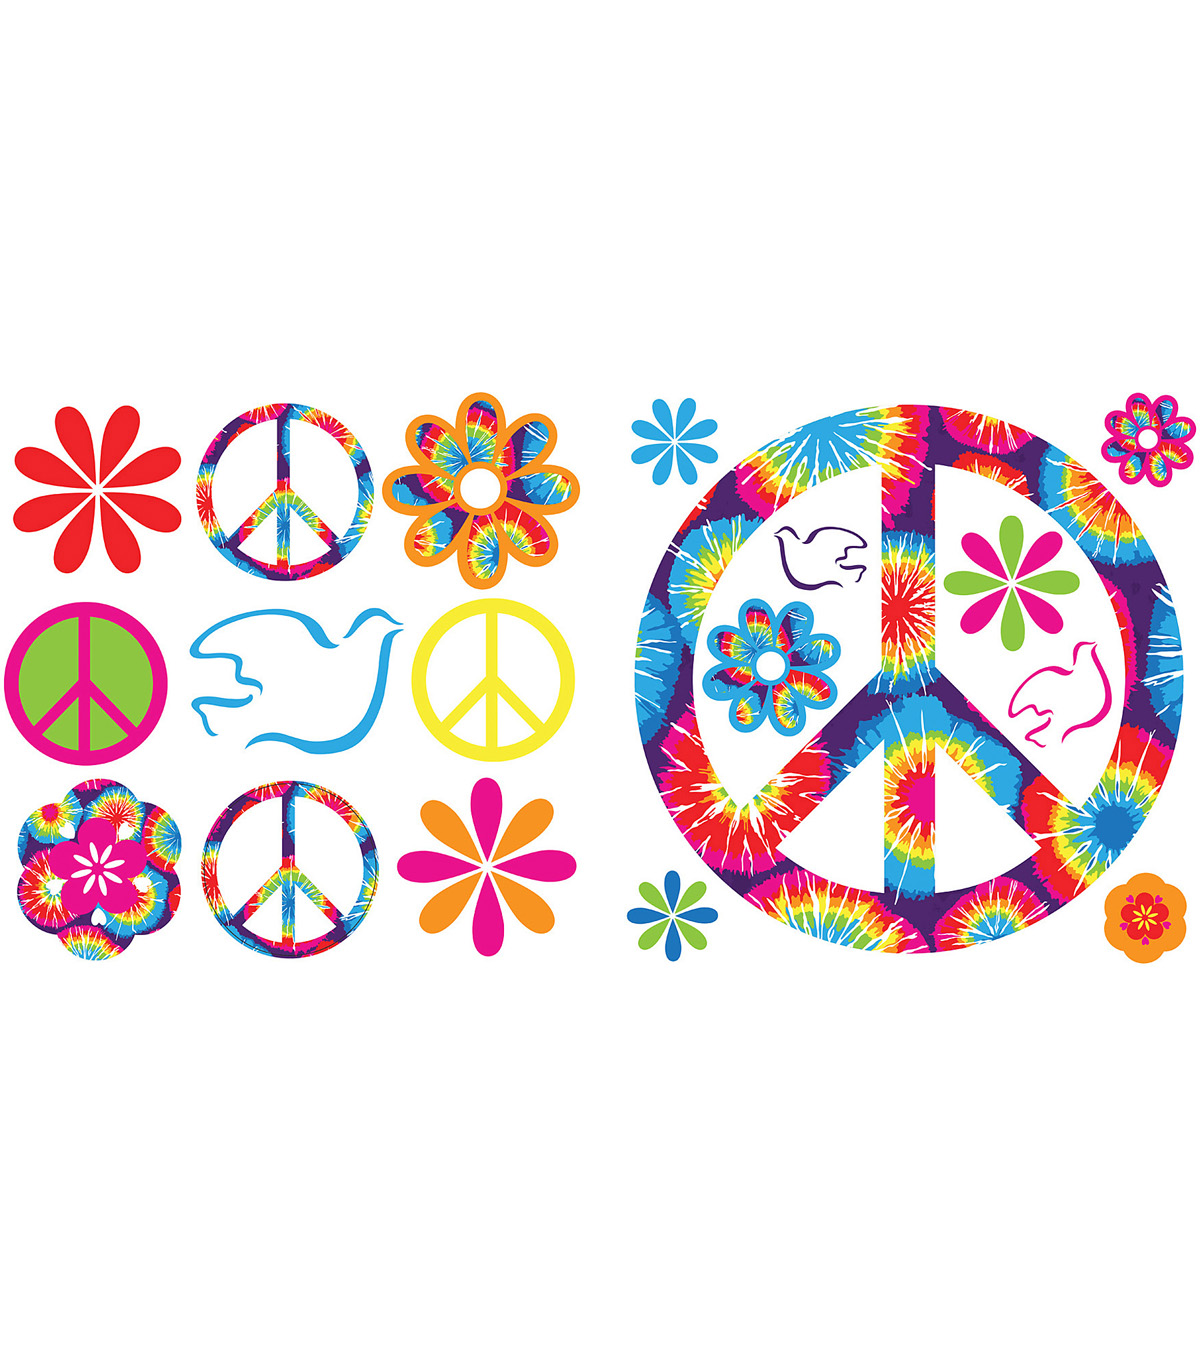 Wall Pops Tie-Dye Peace Appliques, 37 Piece Set